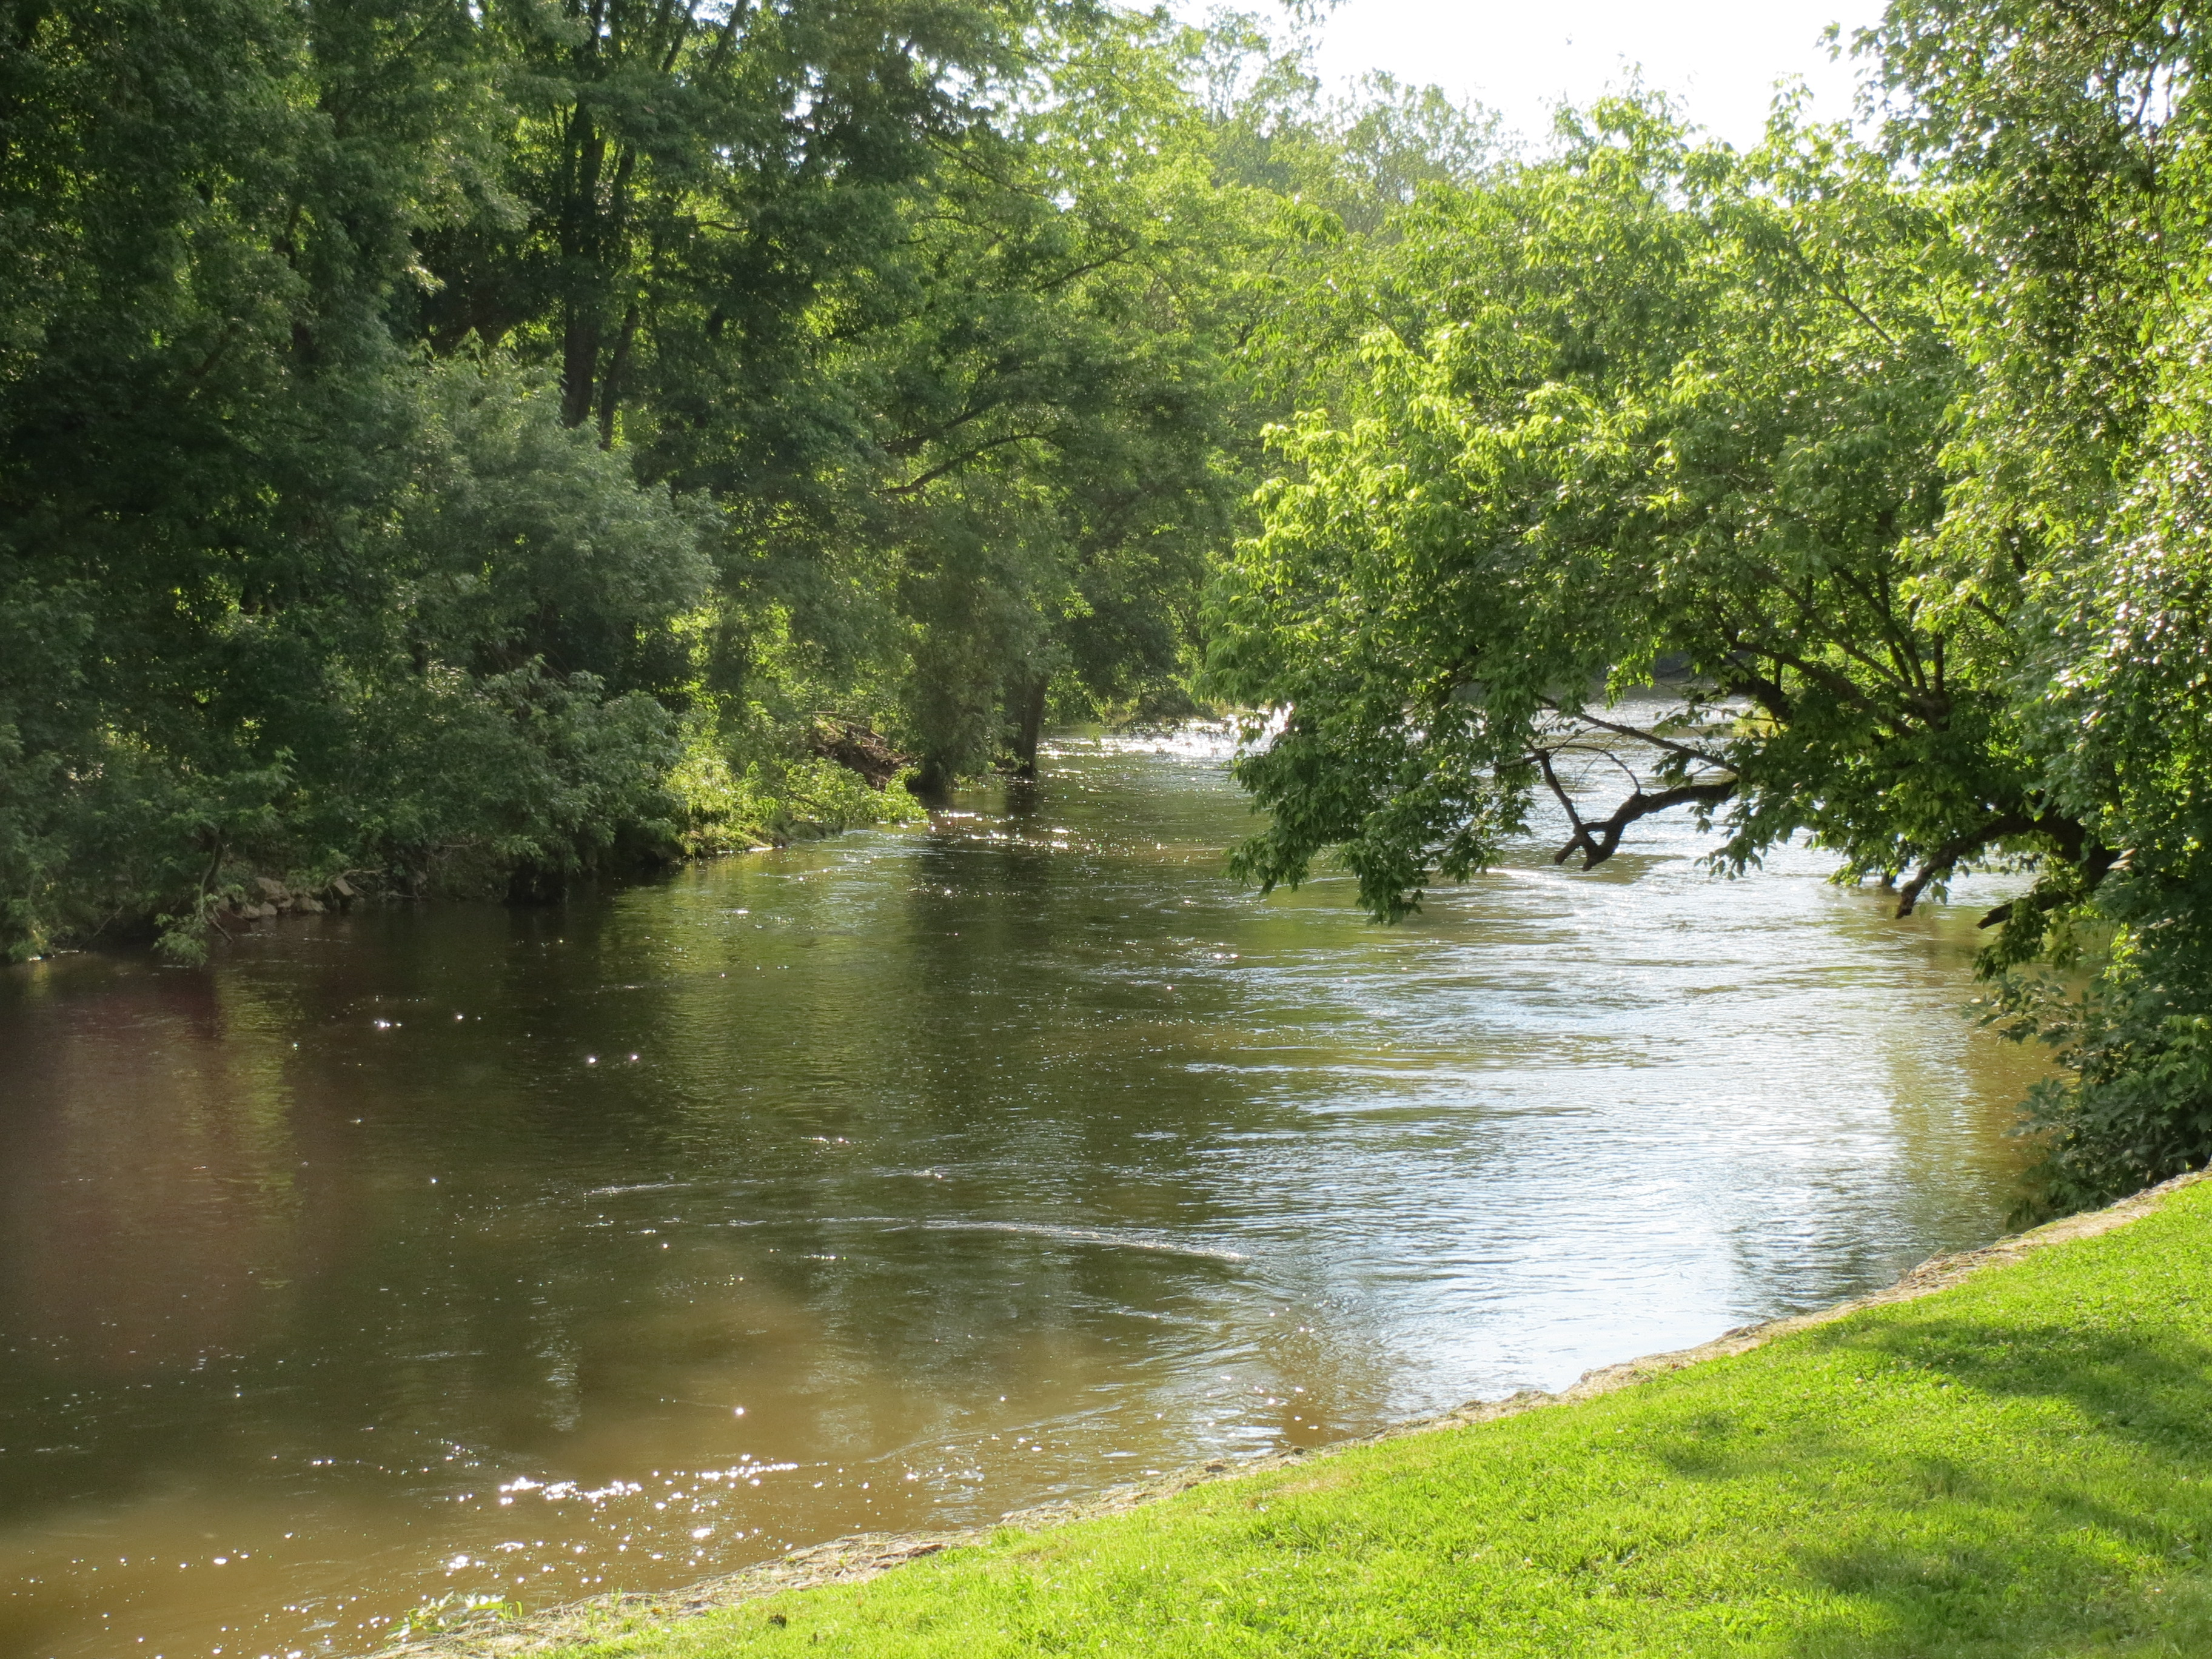 Flood warnings continue for the Brandywine, but heavy rain has moved out of the area, county officials report.